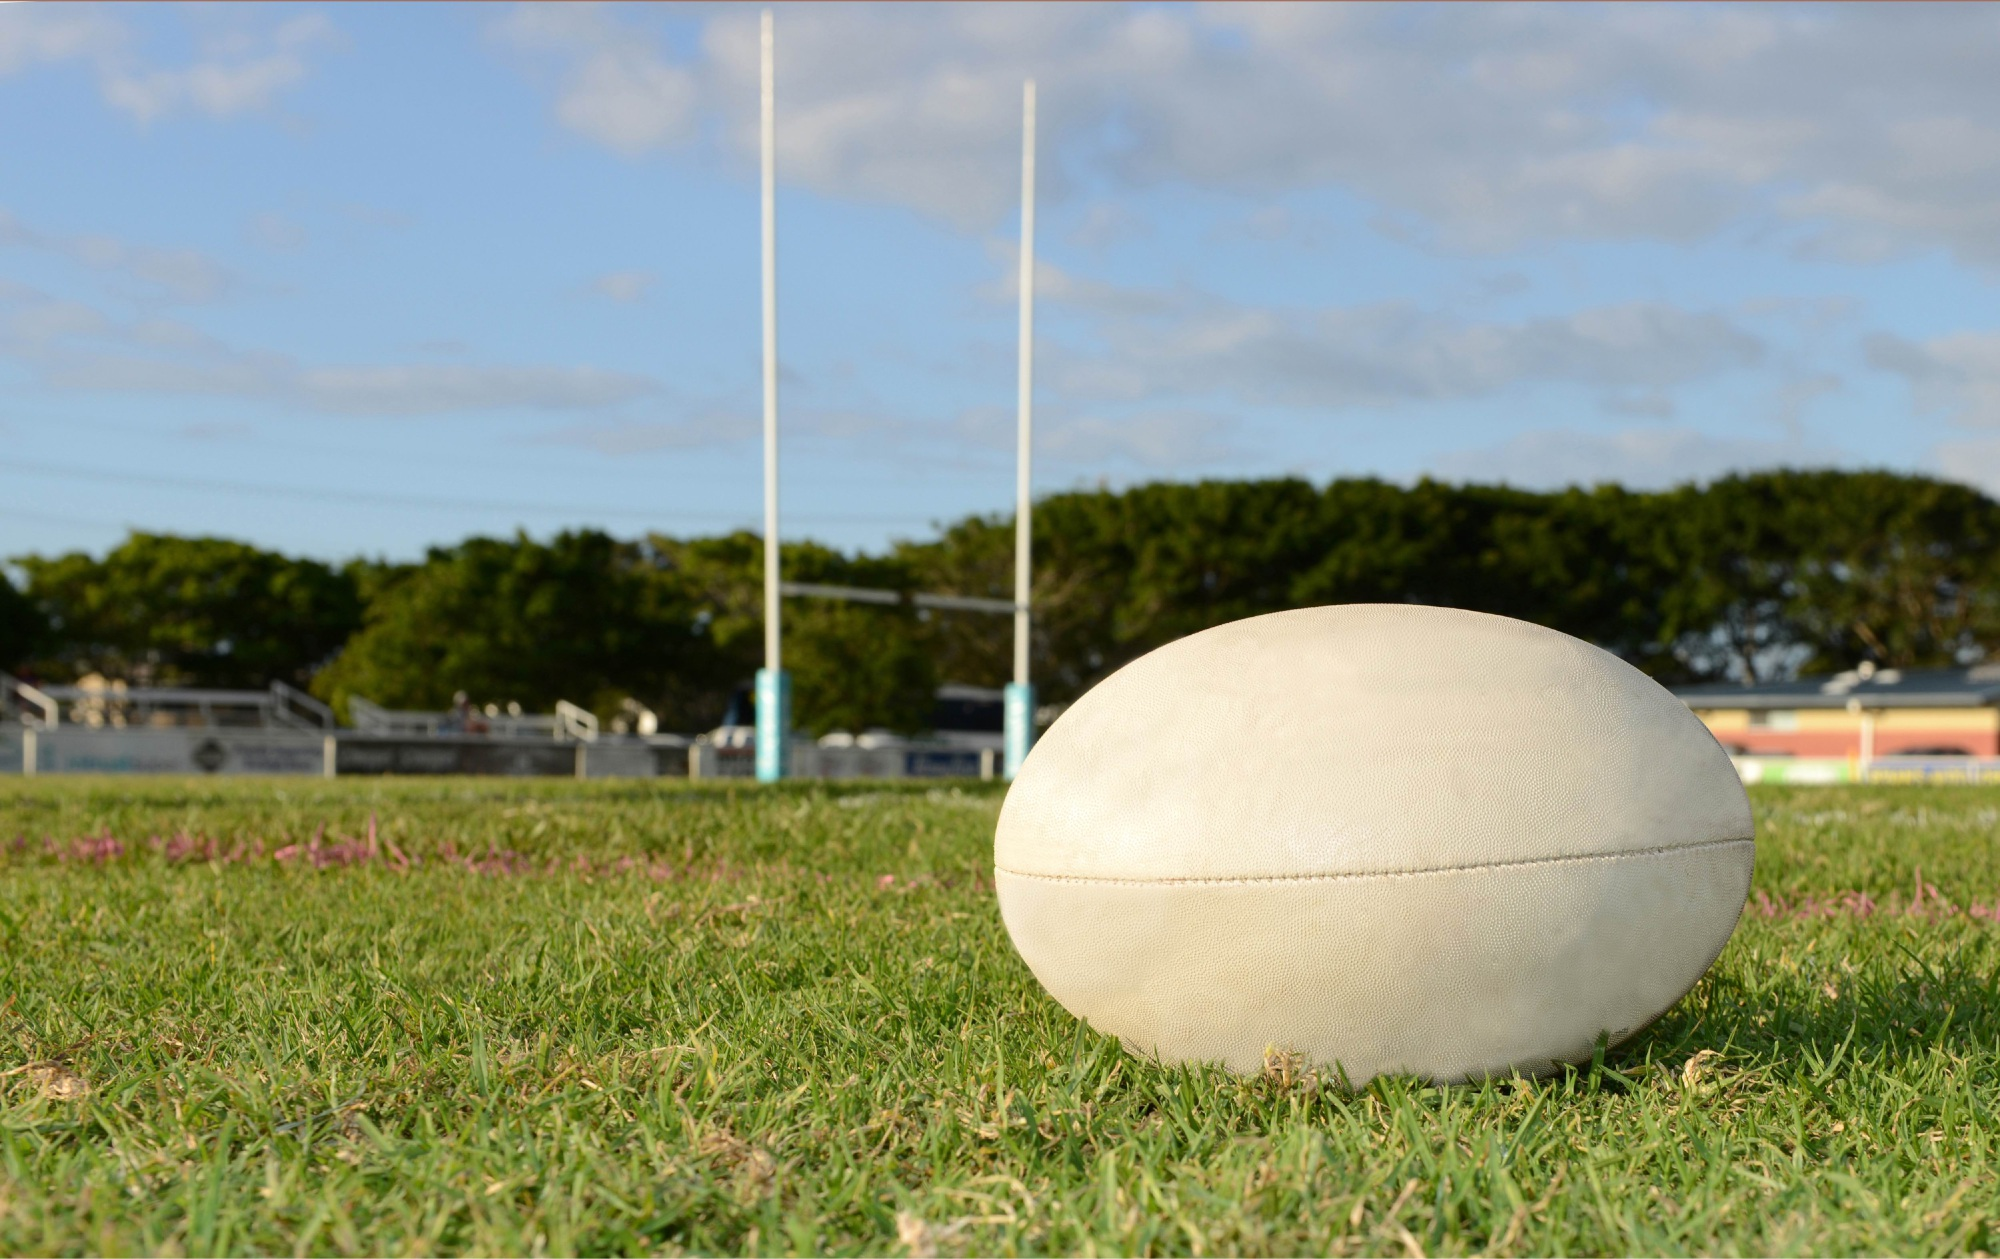 Rugby Union: Swans Suburbs women's team thumped 58-0 by Cottesloe